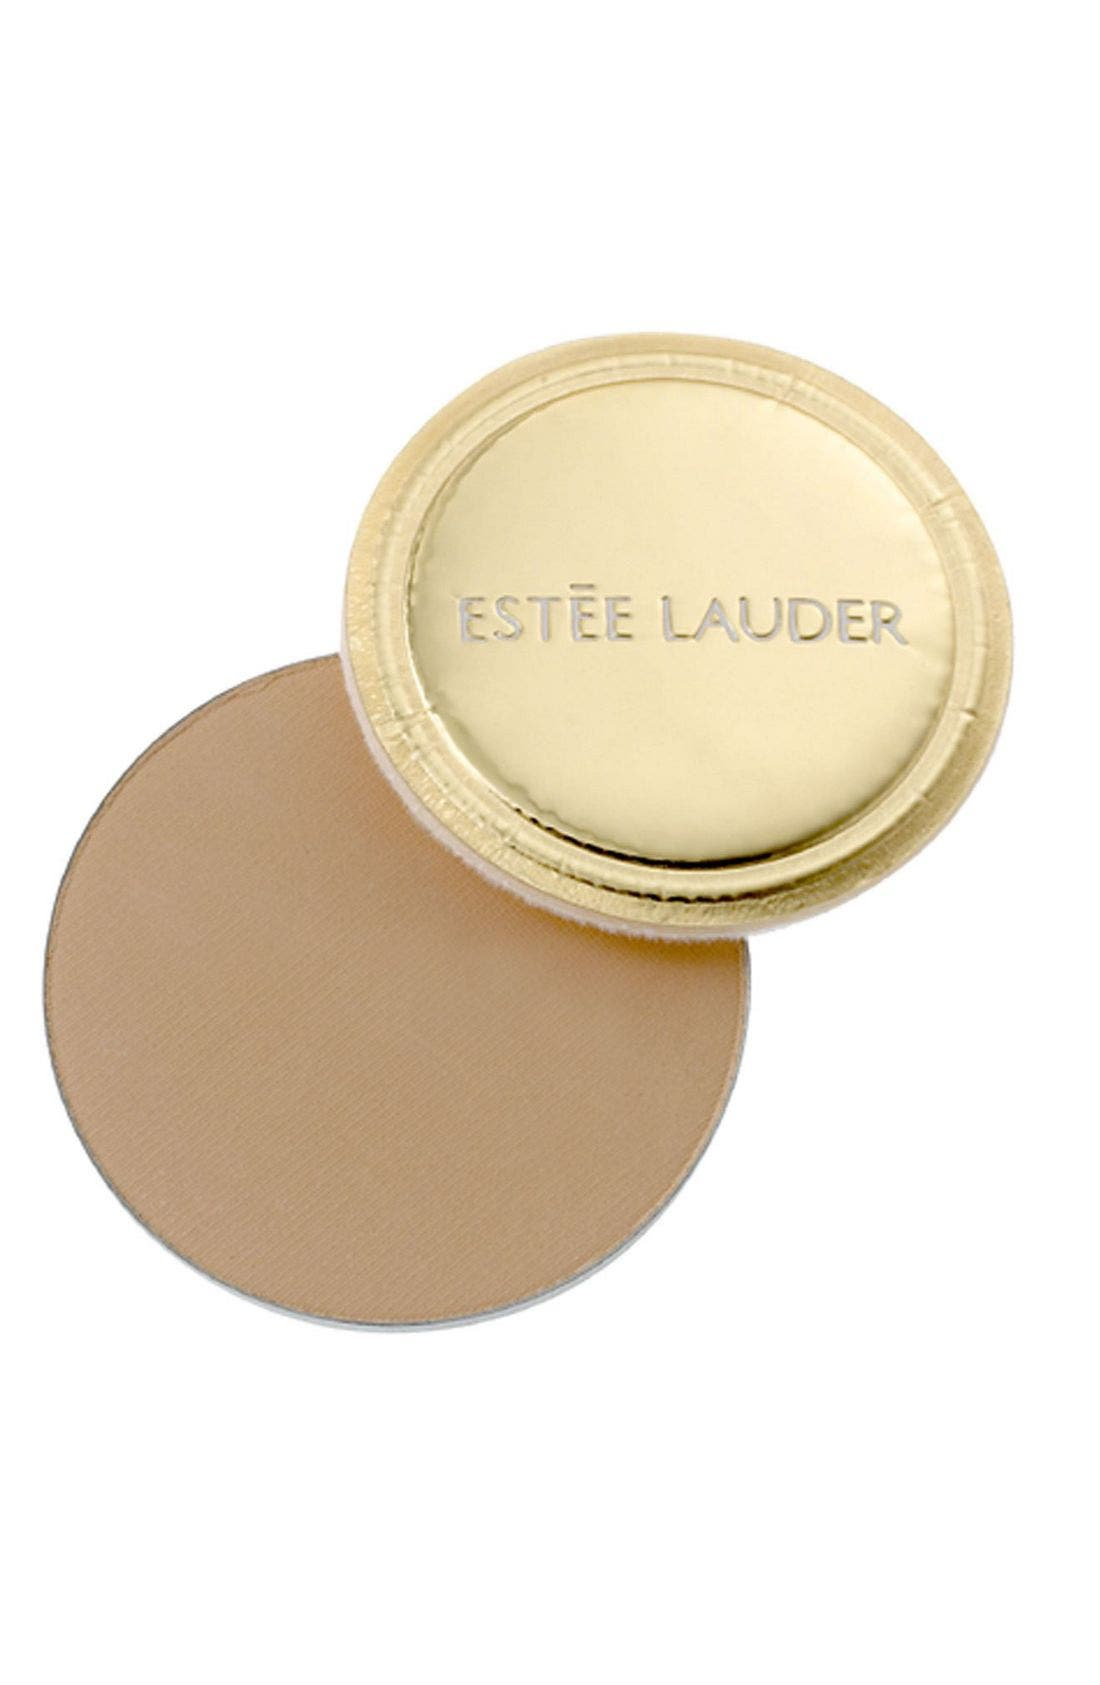 Main Image - Estée Lauder 'After Hours' Lucidity Pressed Powder Refill